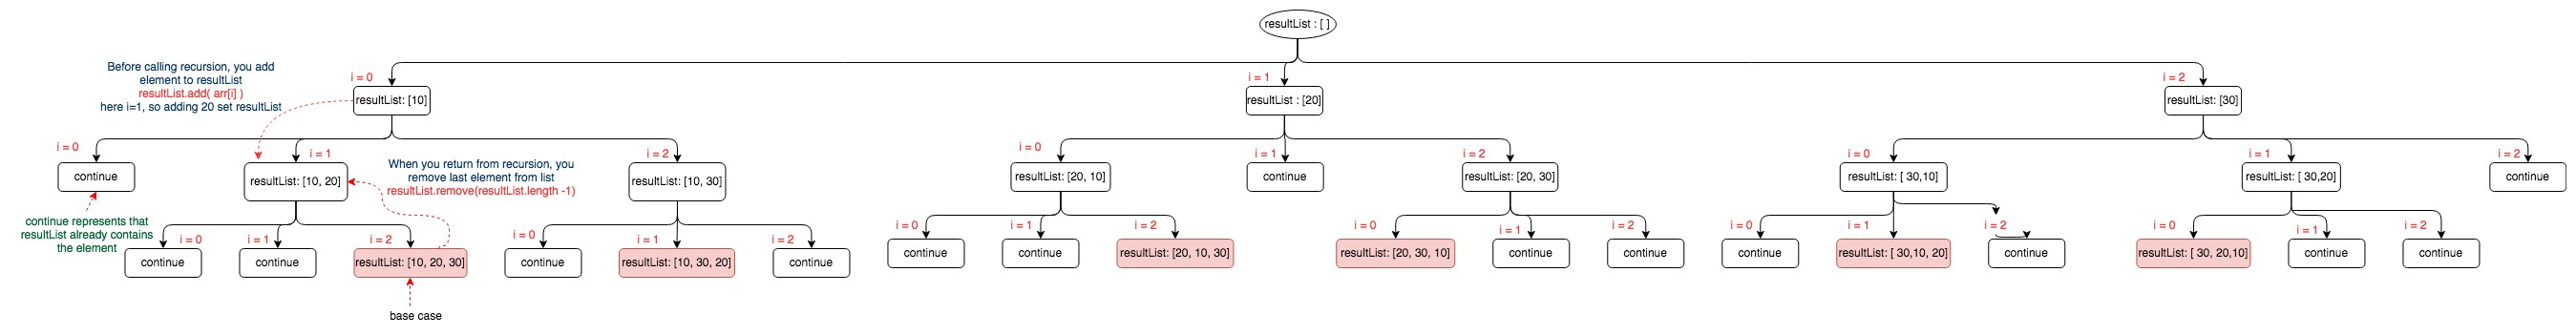 Recursion permutation